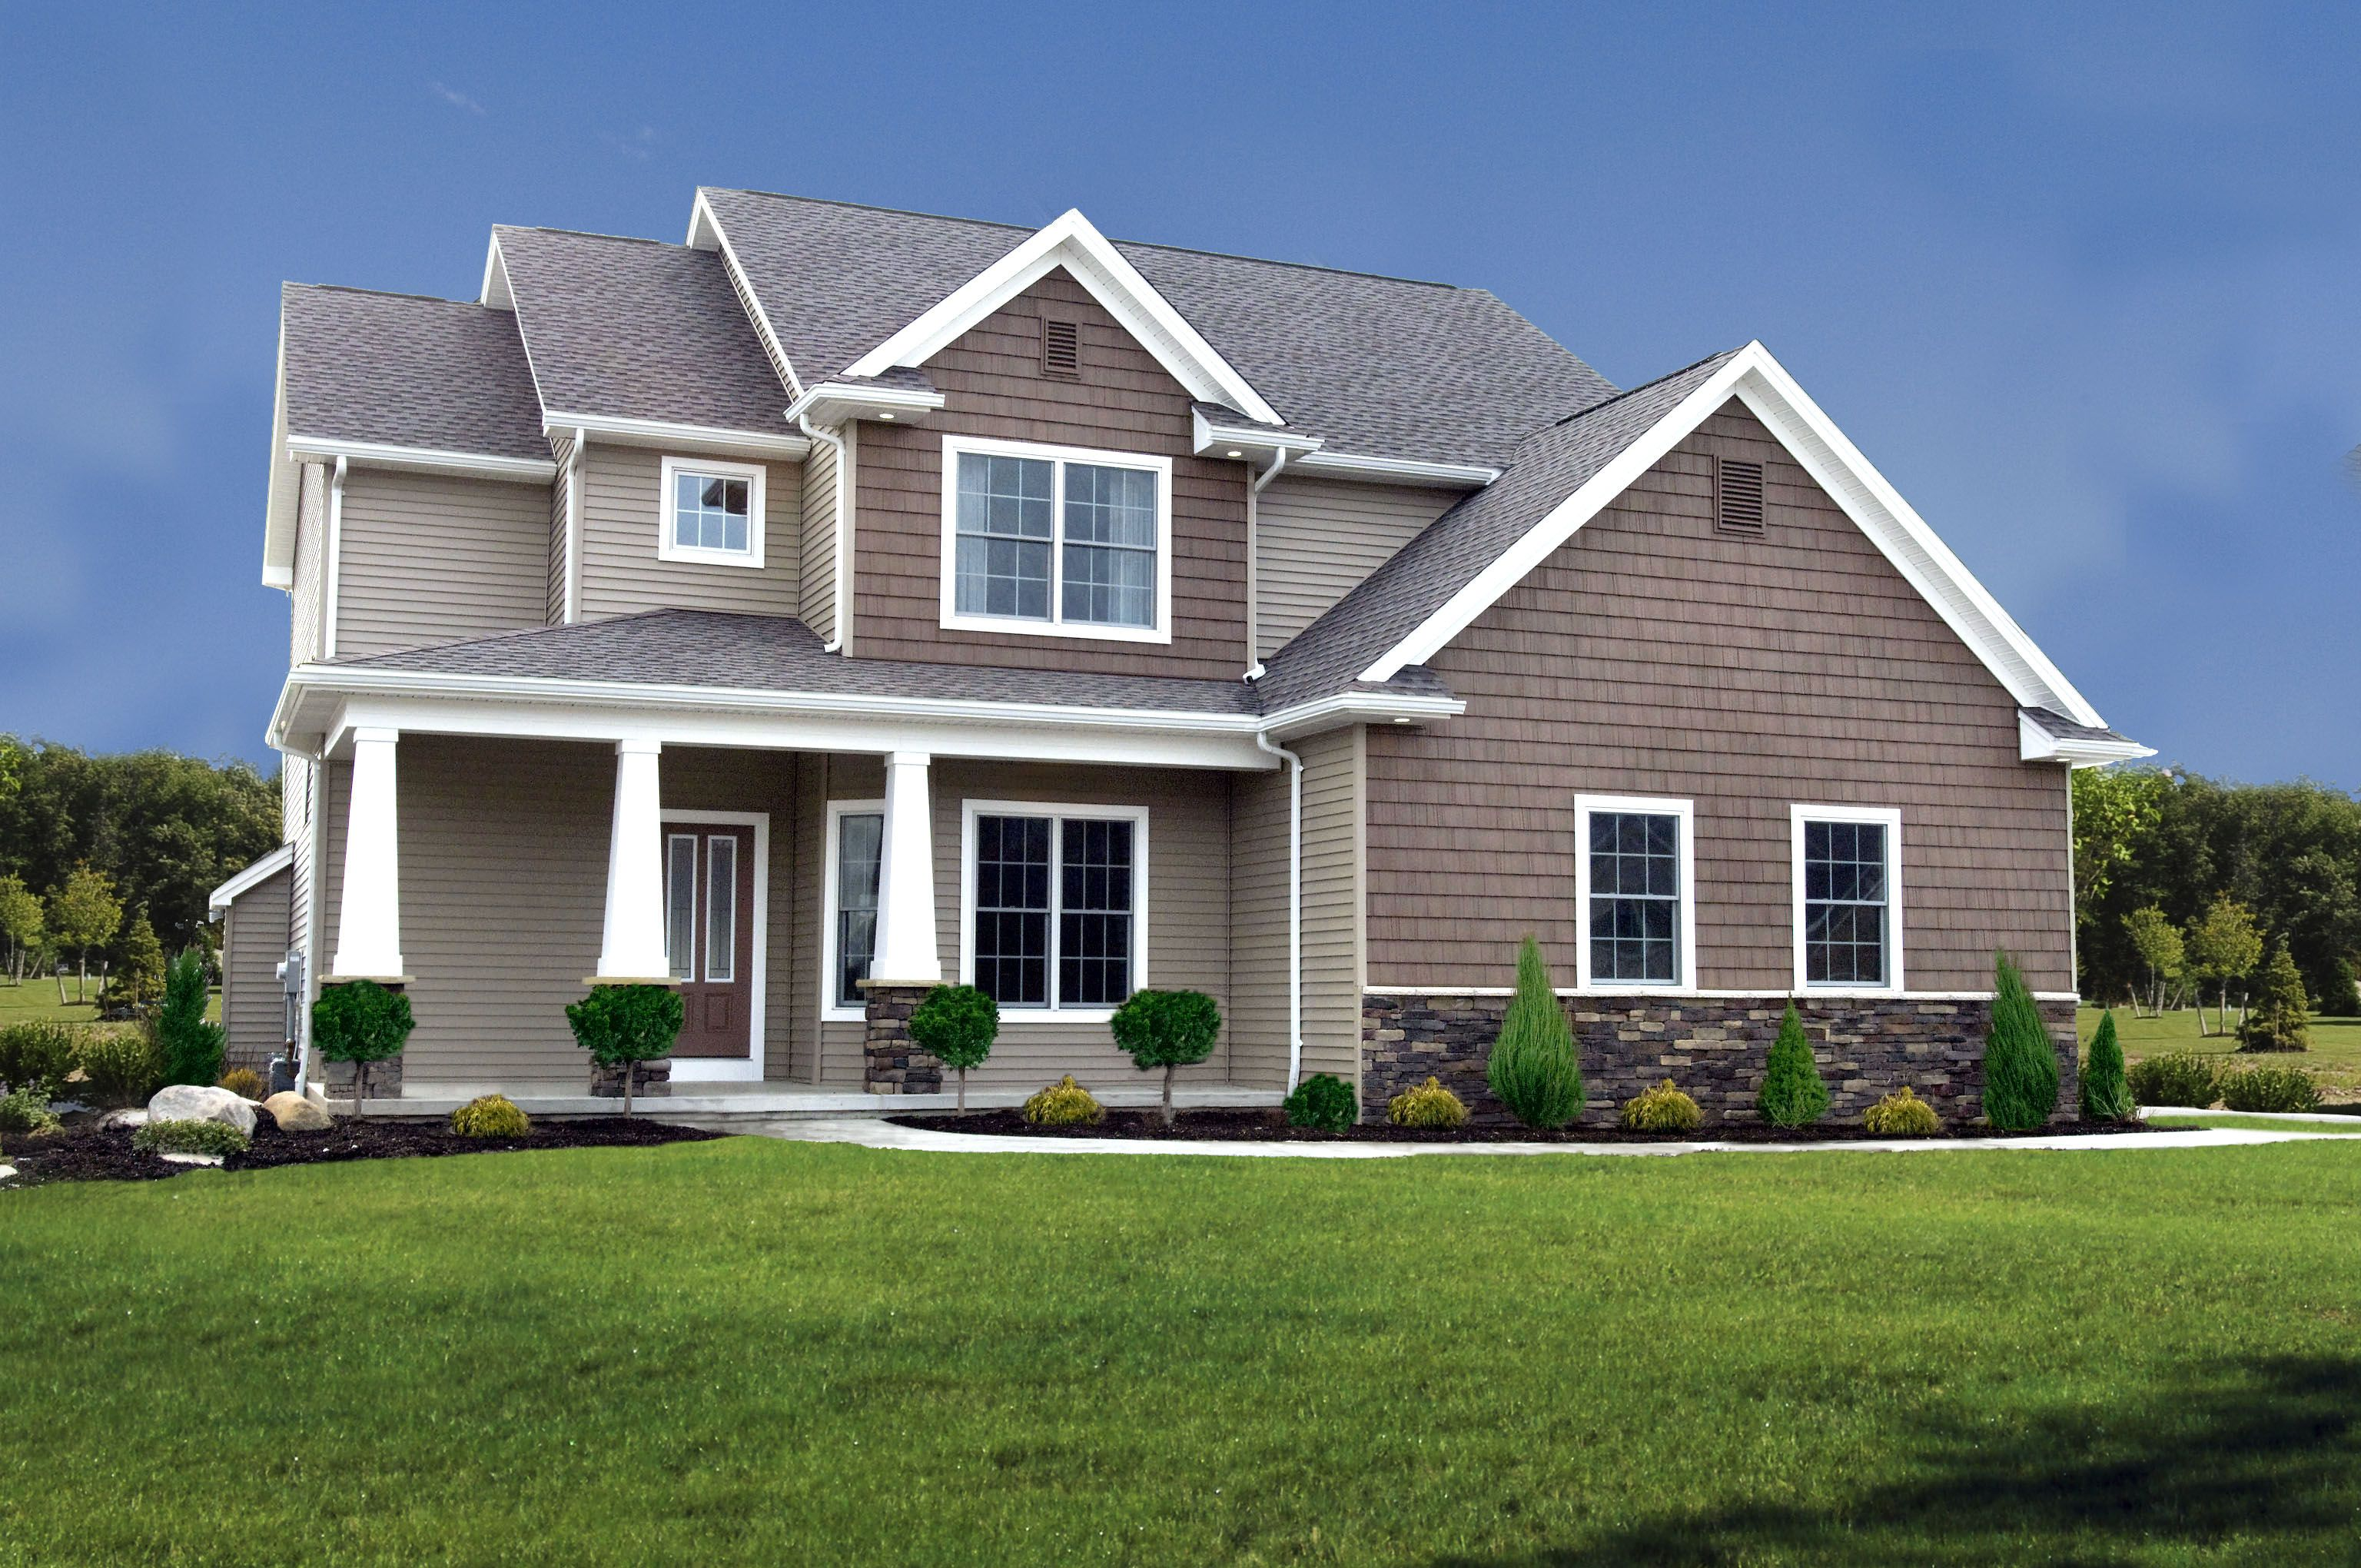 Homes For Sale In Killeen Tx Contact At 254 690 3311 House Styles House Design Real Estate